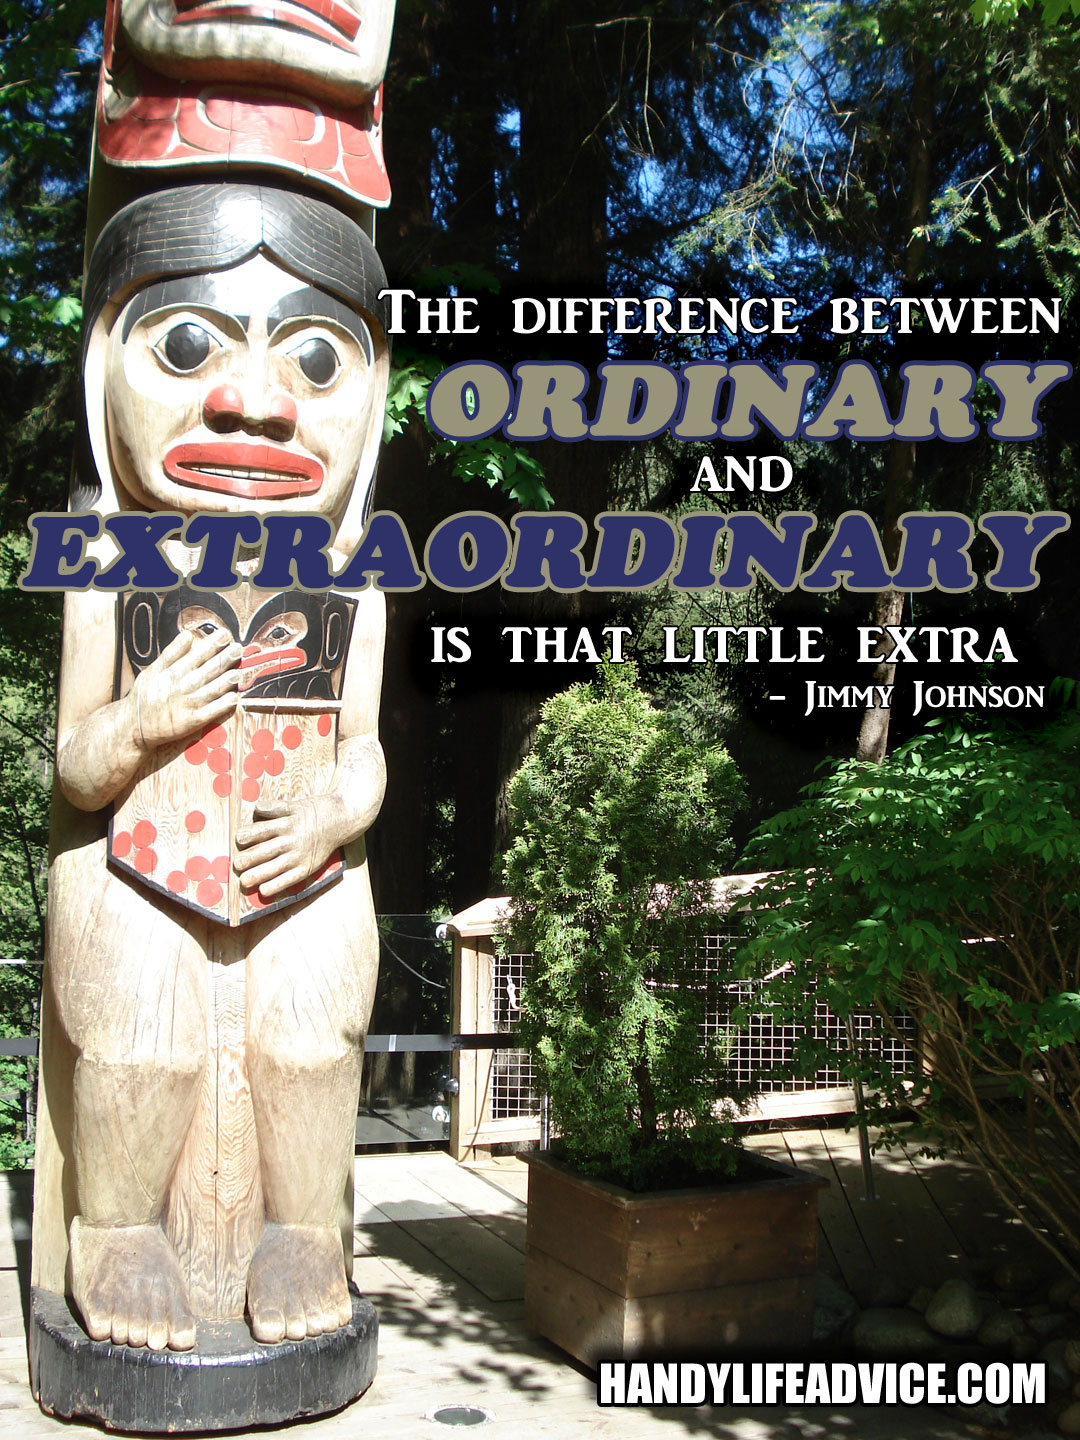 The-difference-between-ordinary-and-extraordinary-is-that-little-extra---Jimmy-Johnson